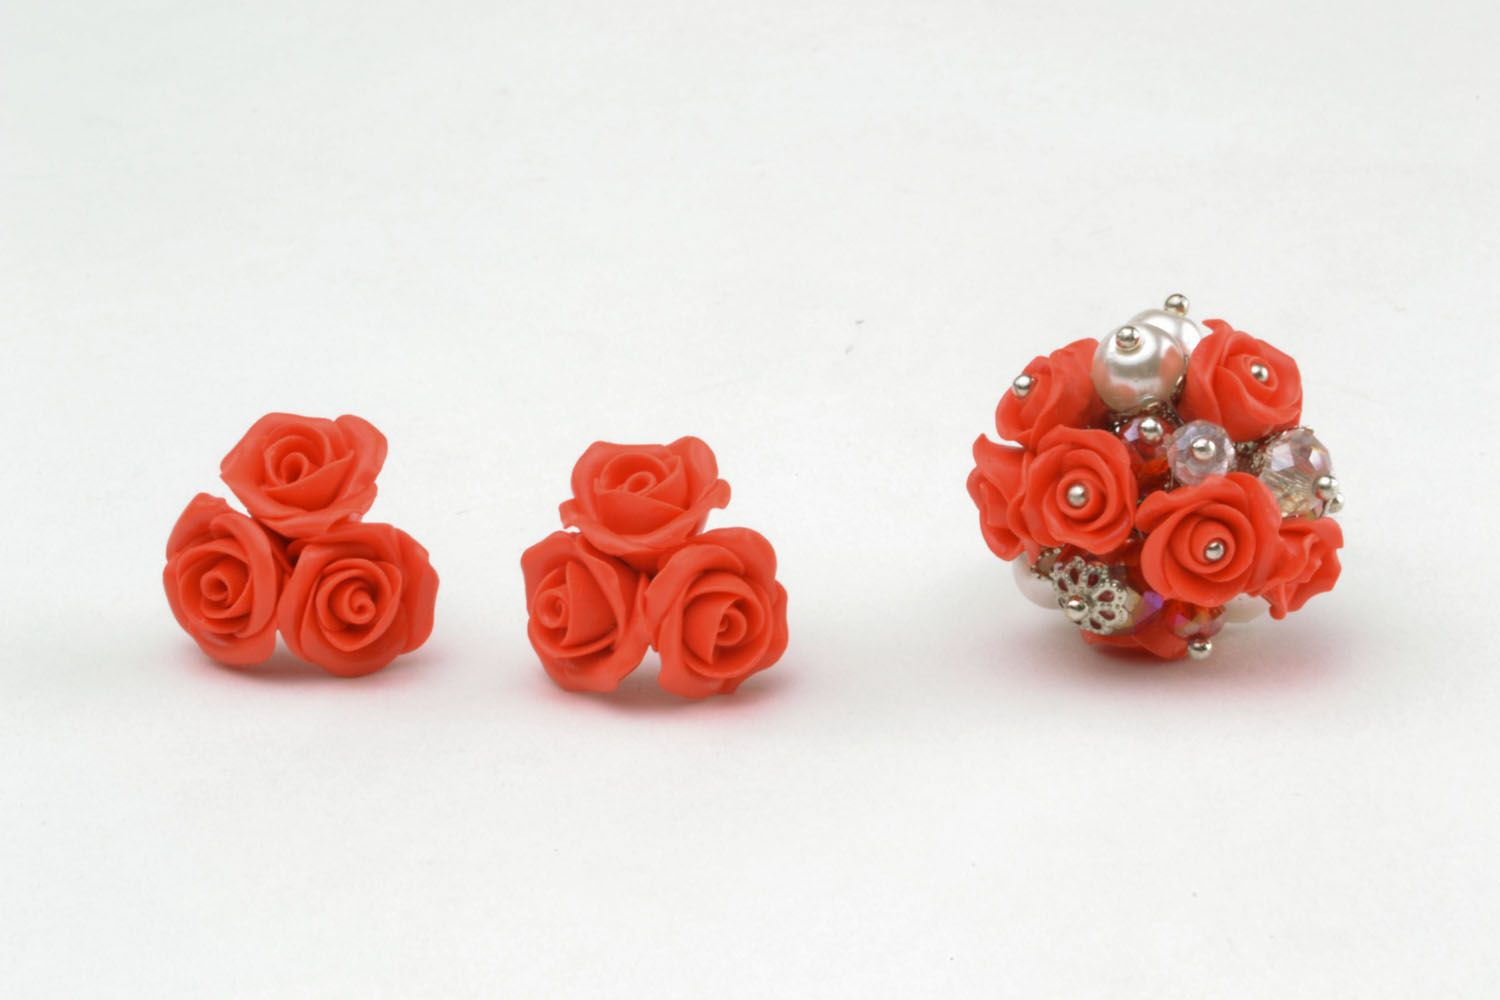 Homemade evening ring and earrings photo 3